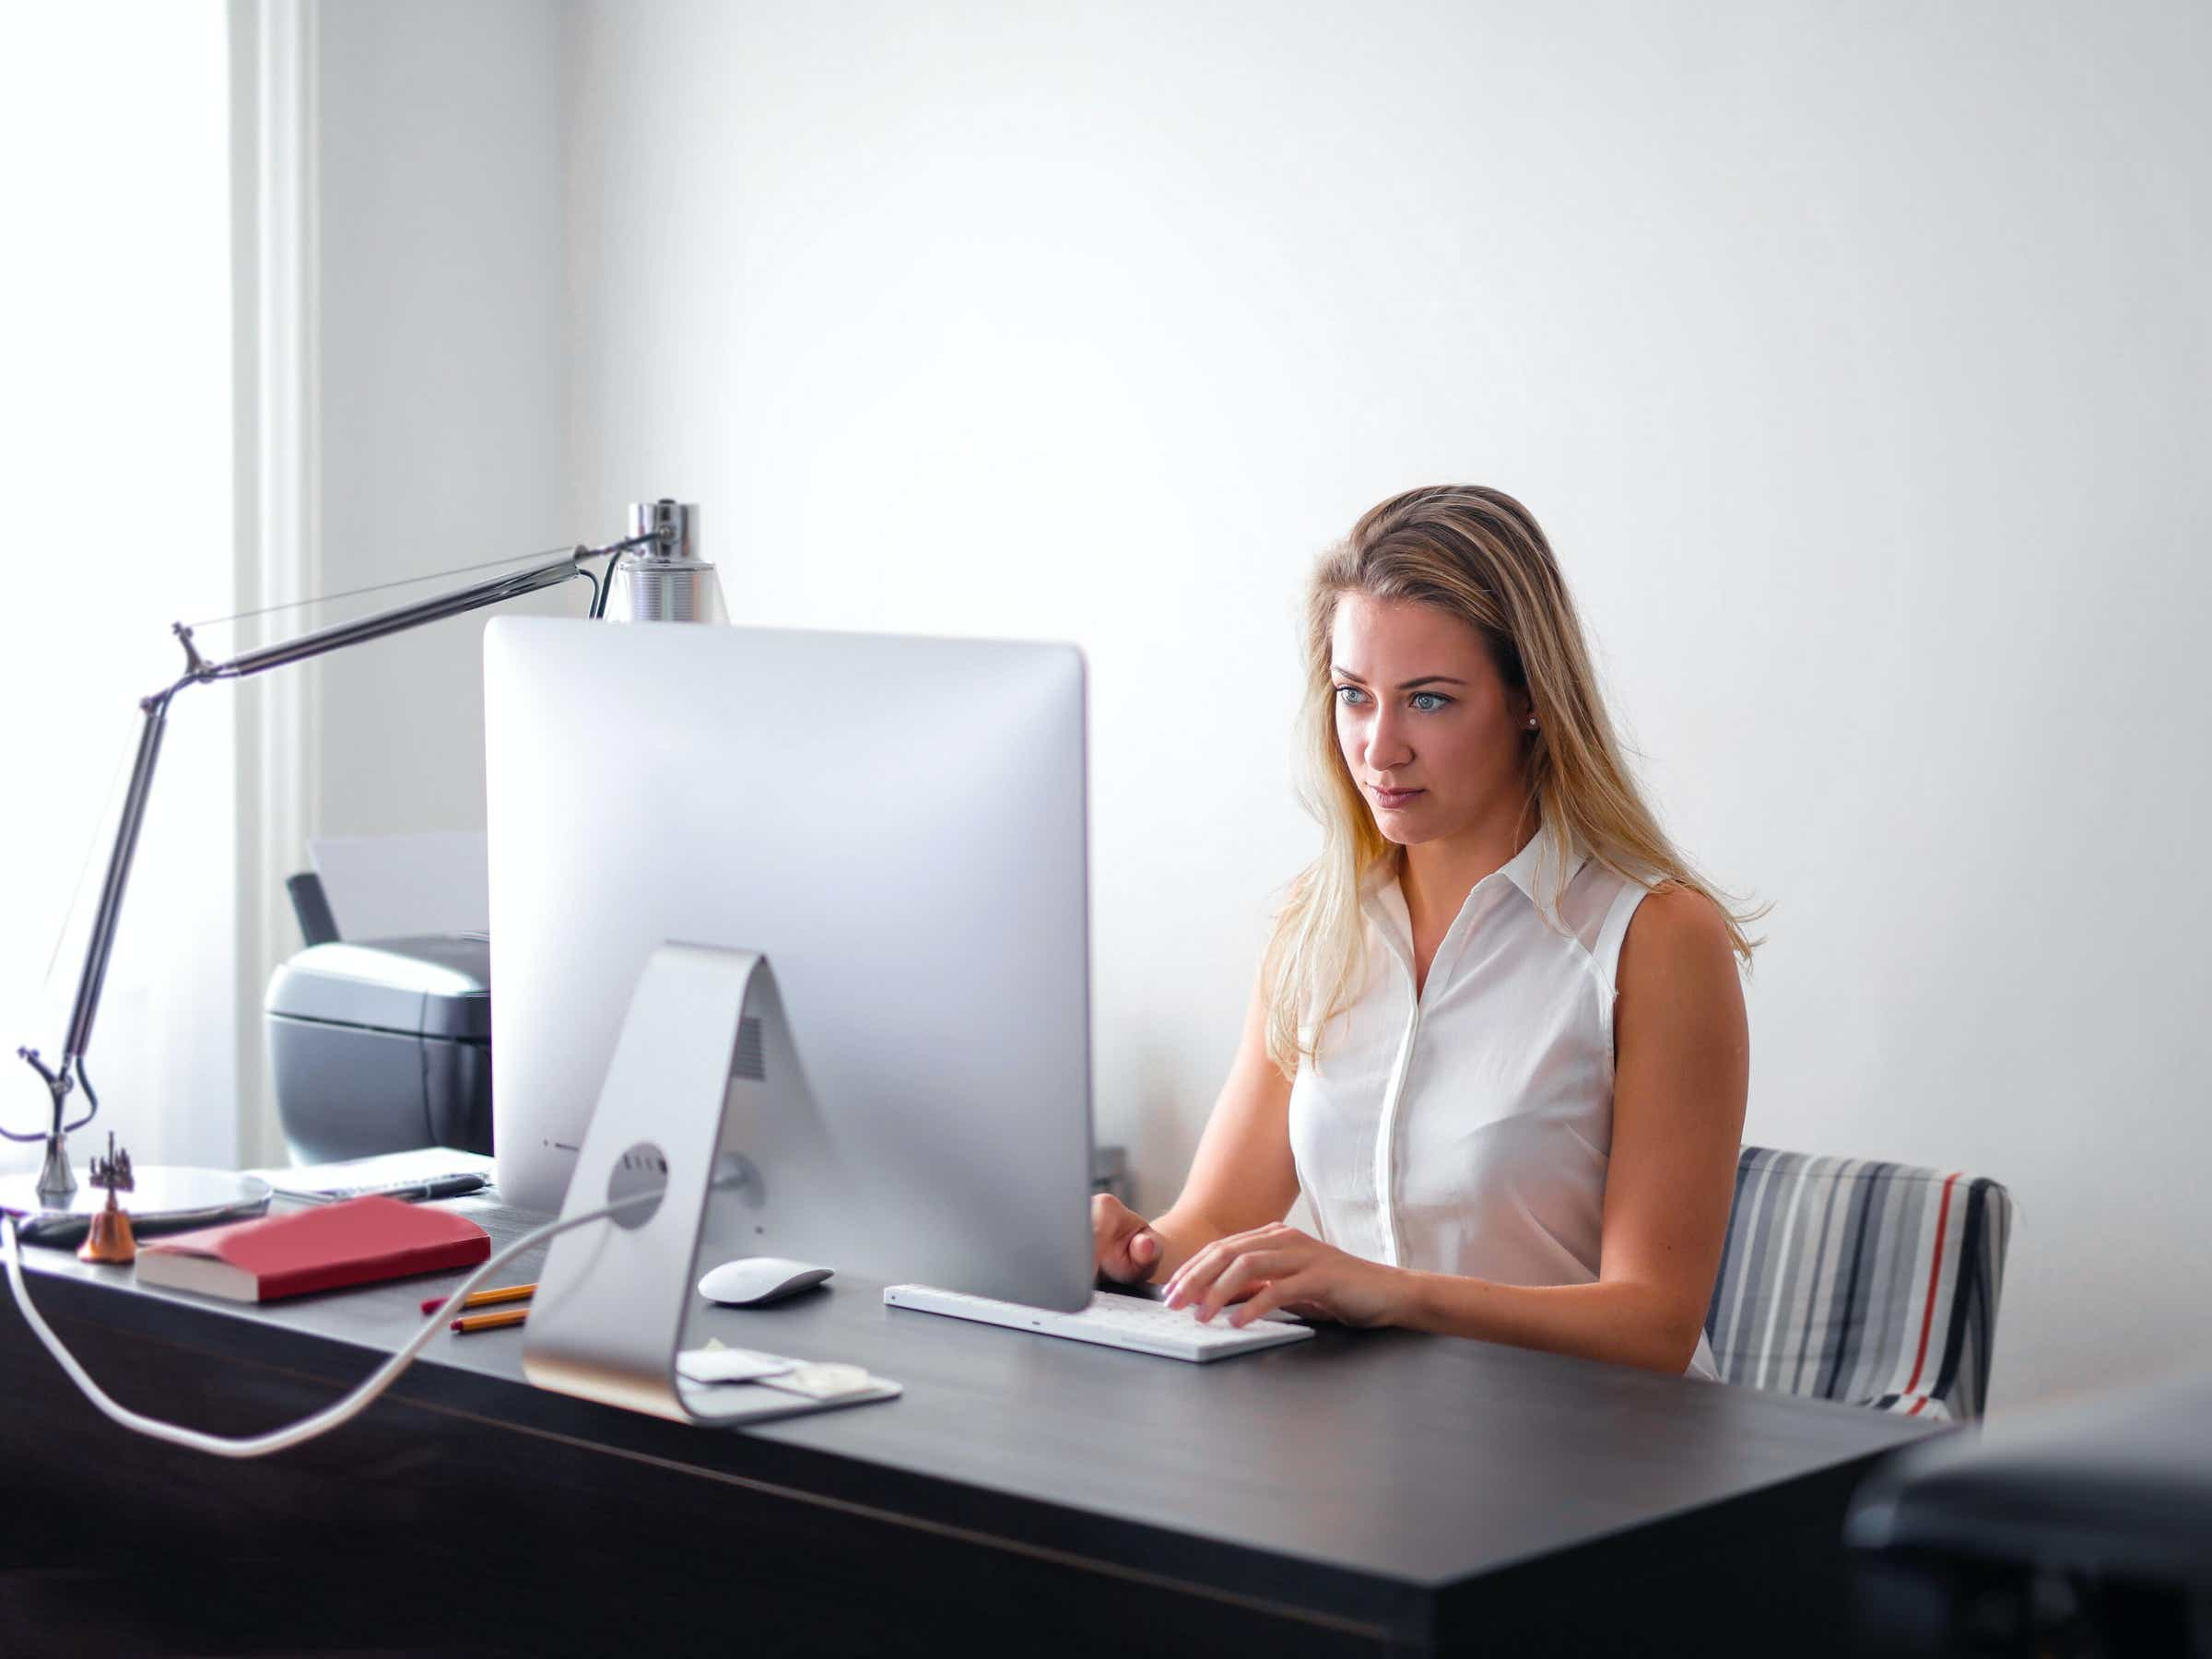 How to do an Instant Background Check?